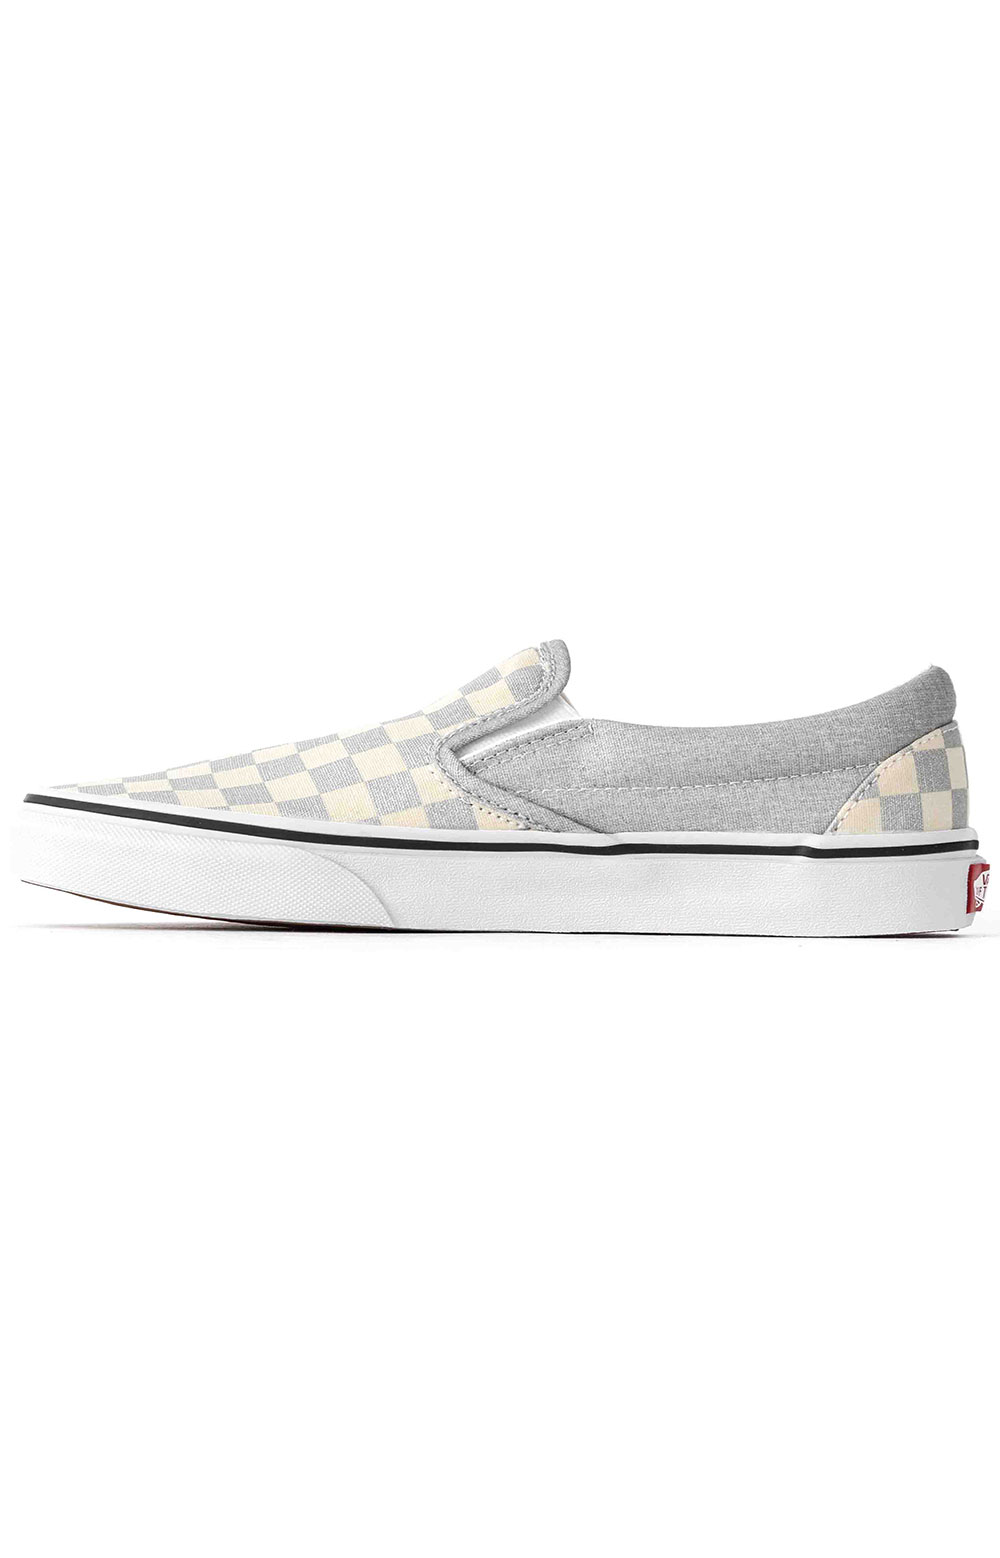 (U38WWS3) Checkerboard Classic Slip-On Shoe - Silver 4